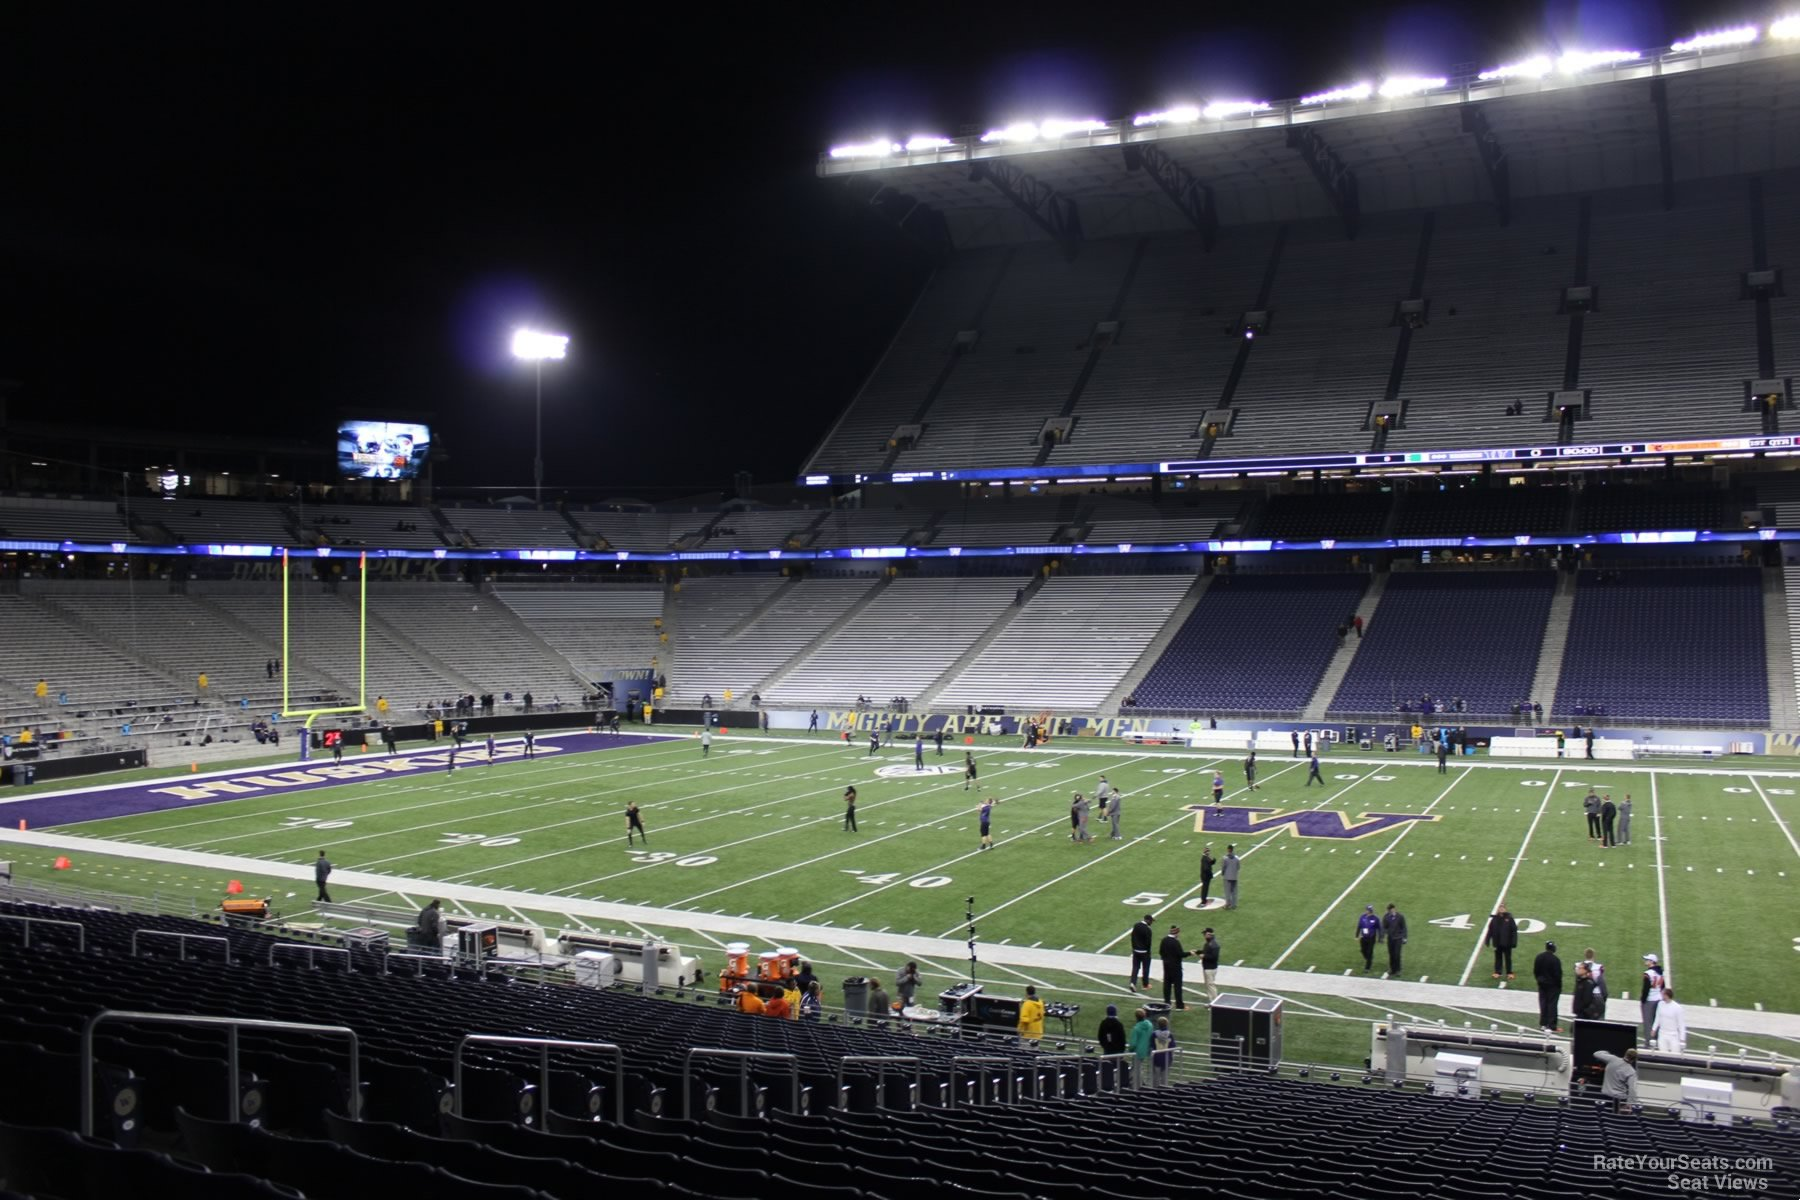 Seat View from Section 105 Row 30 at Husky Stadium